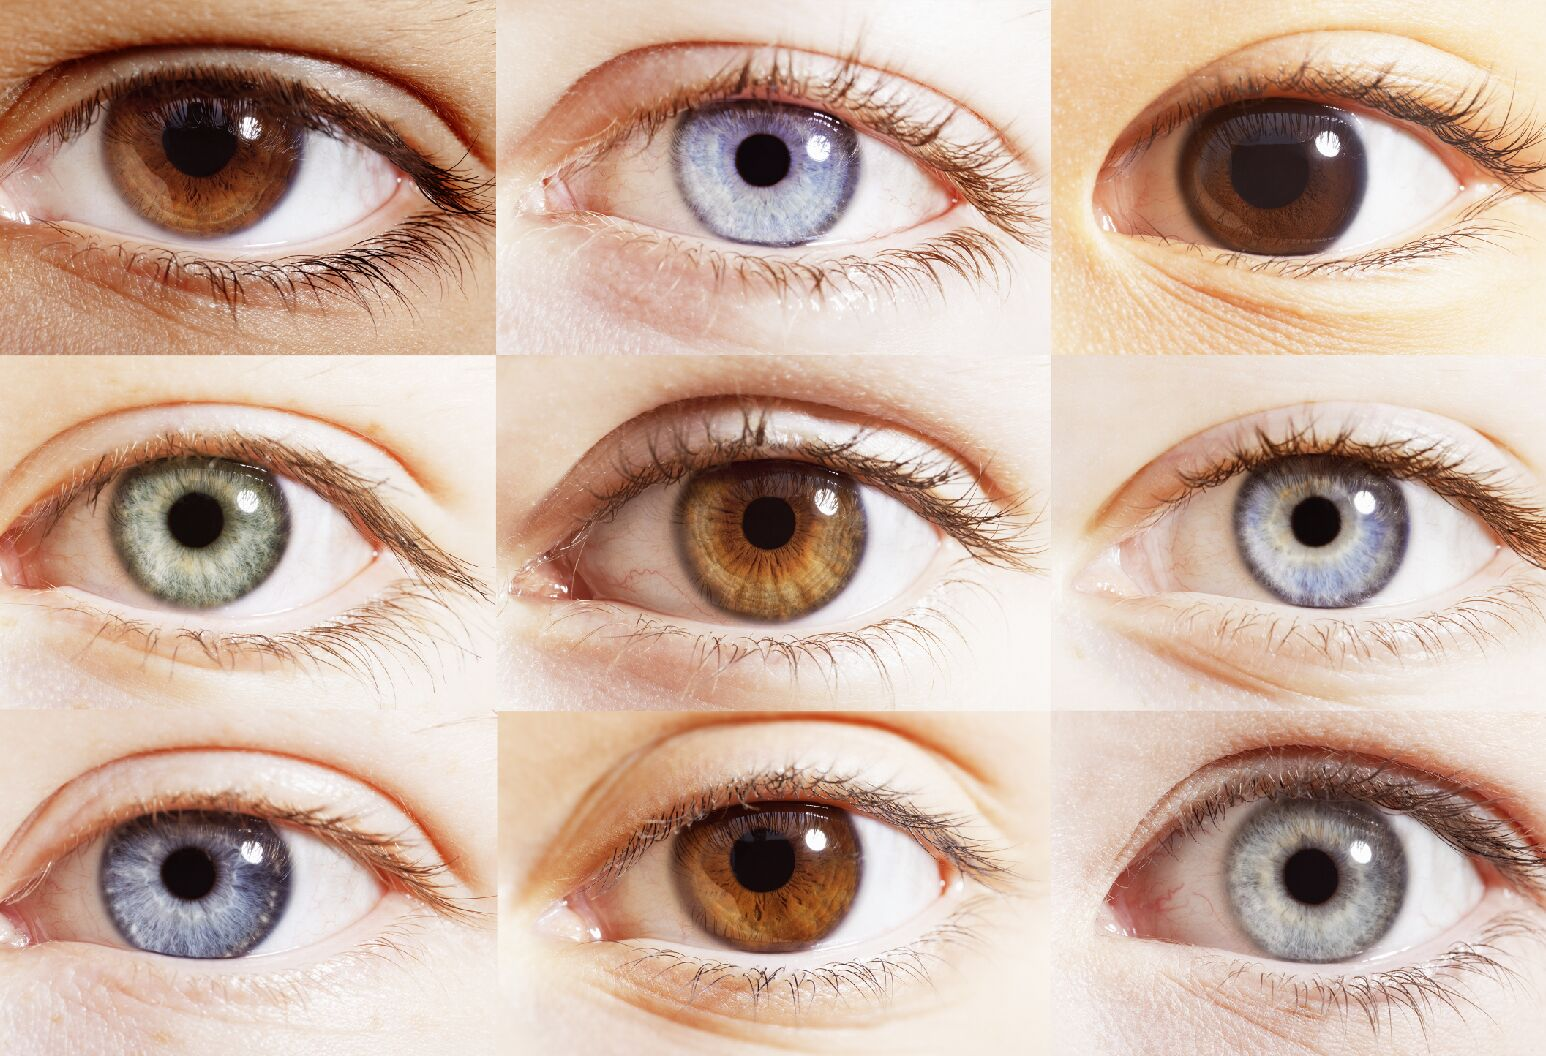 Eyes of multiple colors